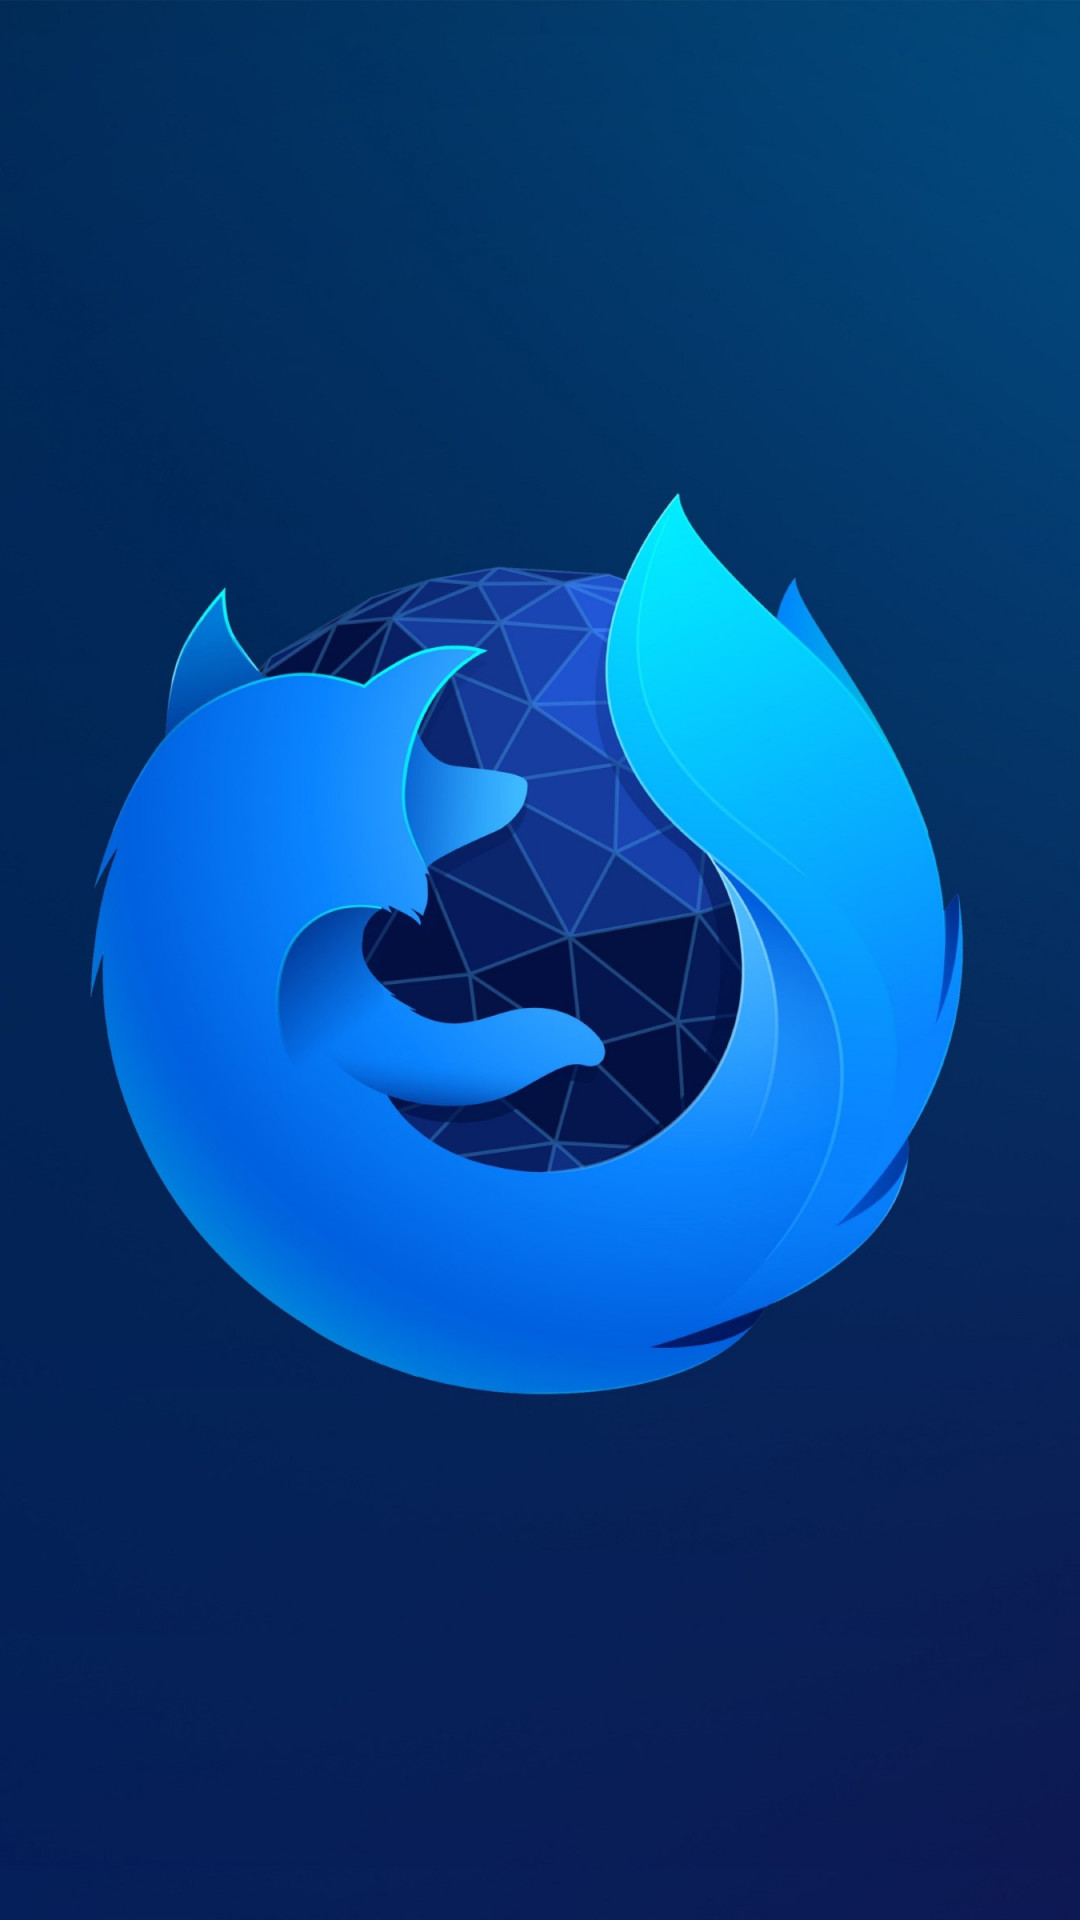 Firefox wallpaper 1080x1920